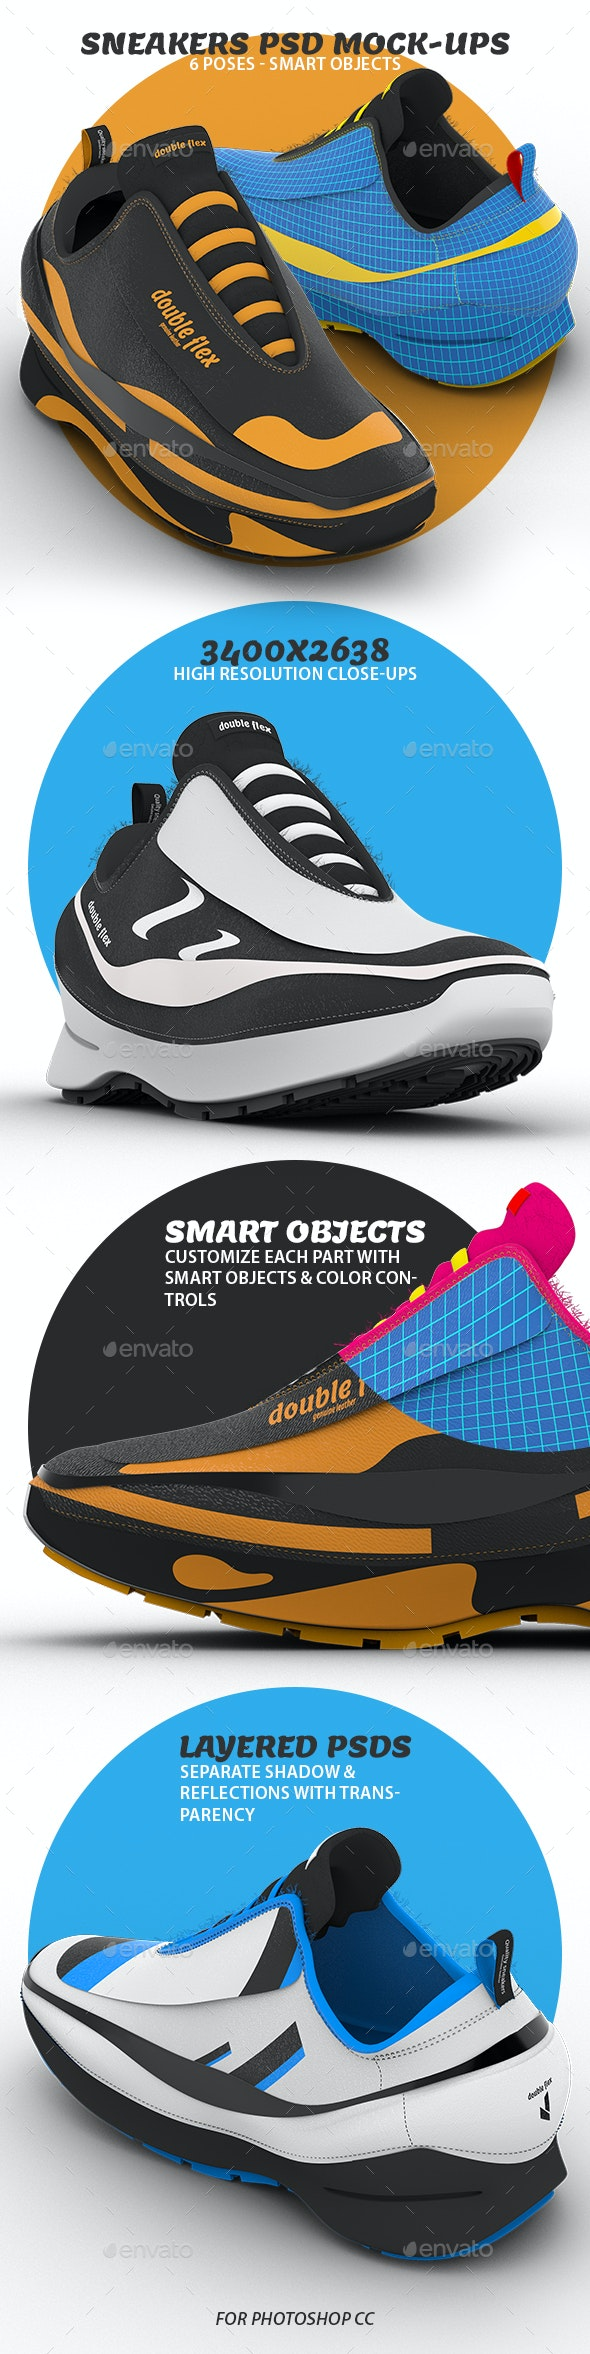 Sneakers PSD Mock-ups - Miscellaneous Apparel